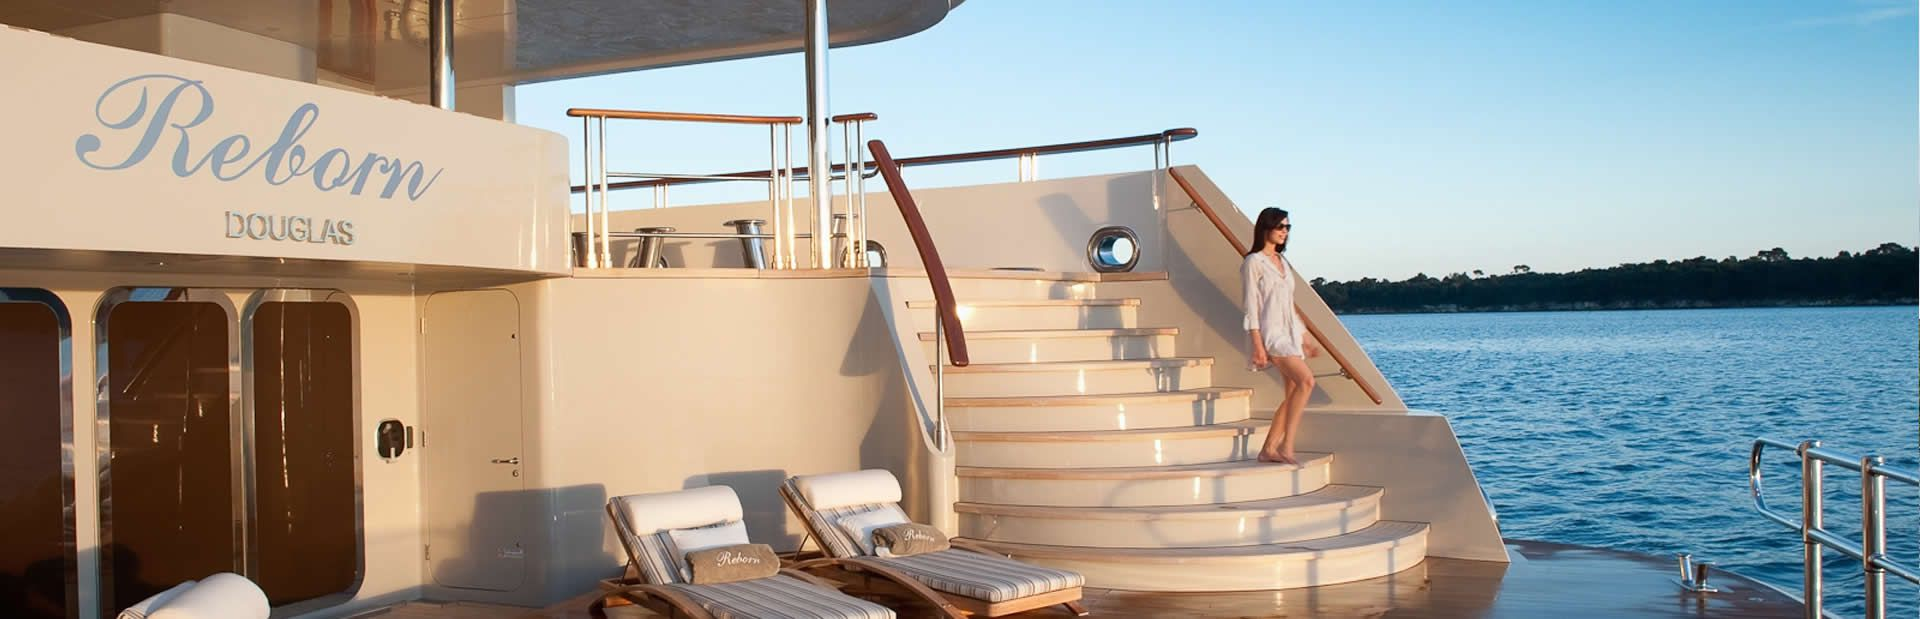 Charter yacht Reborn's Beach Club at sunset